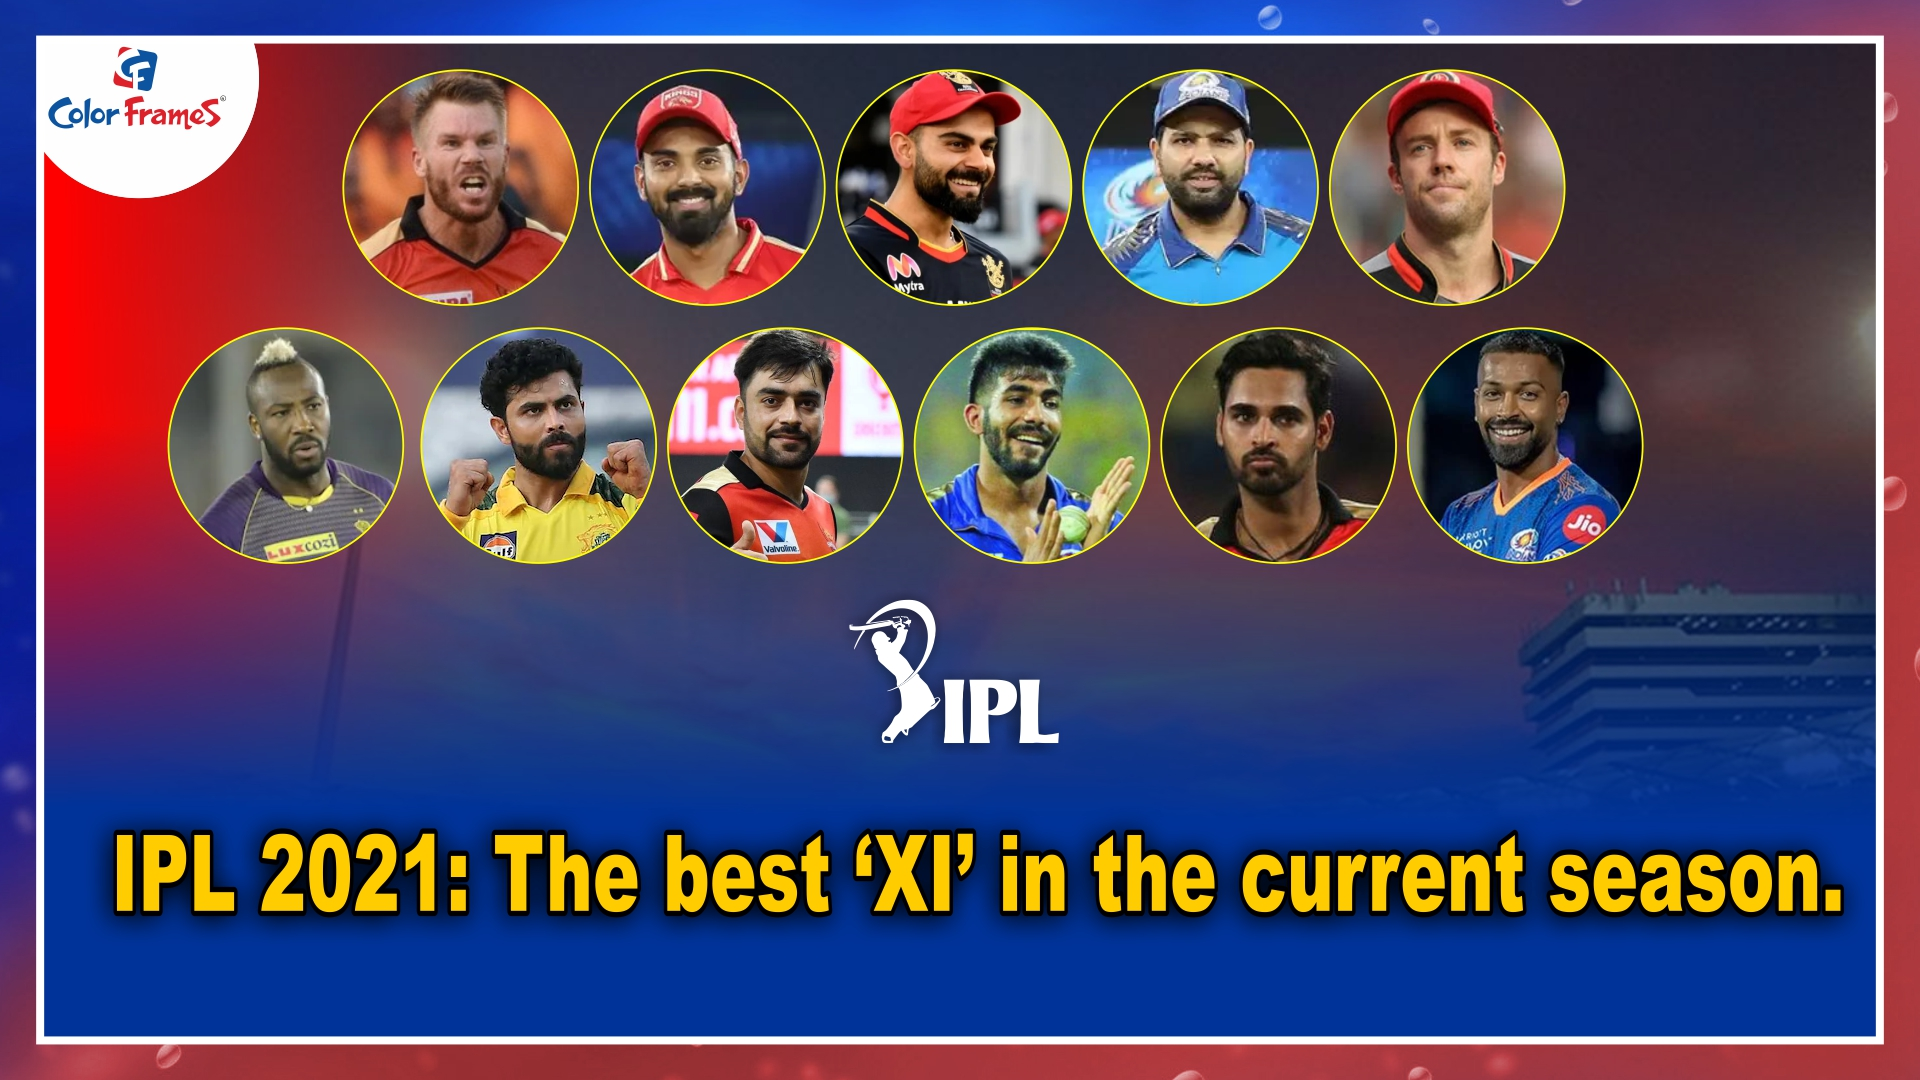 IPL 2021: The best 'XI' in the current season.